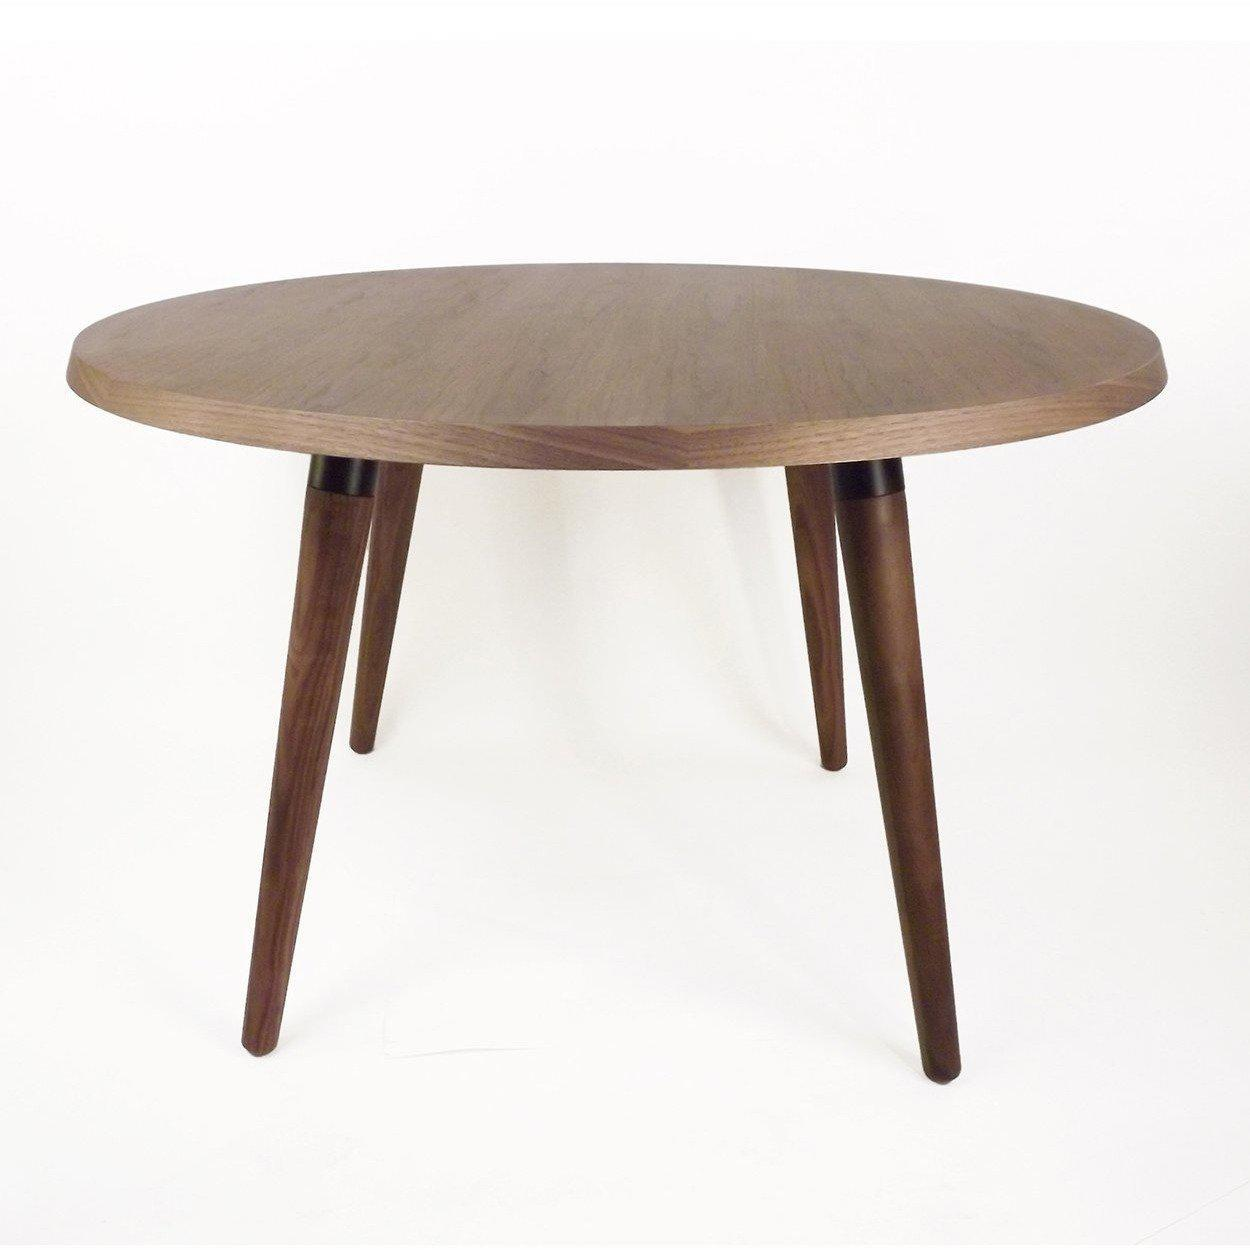 [FET1919B] The Milton Dining Table